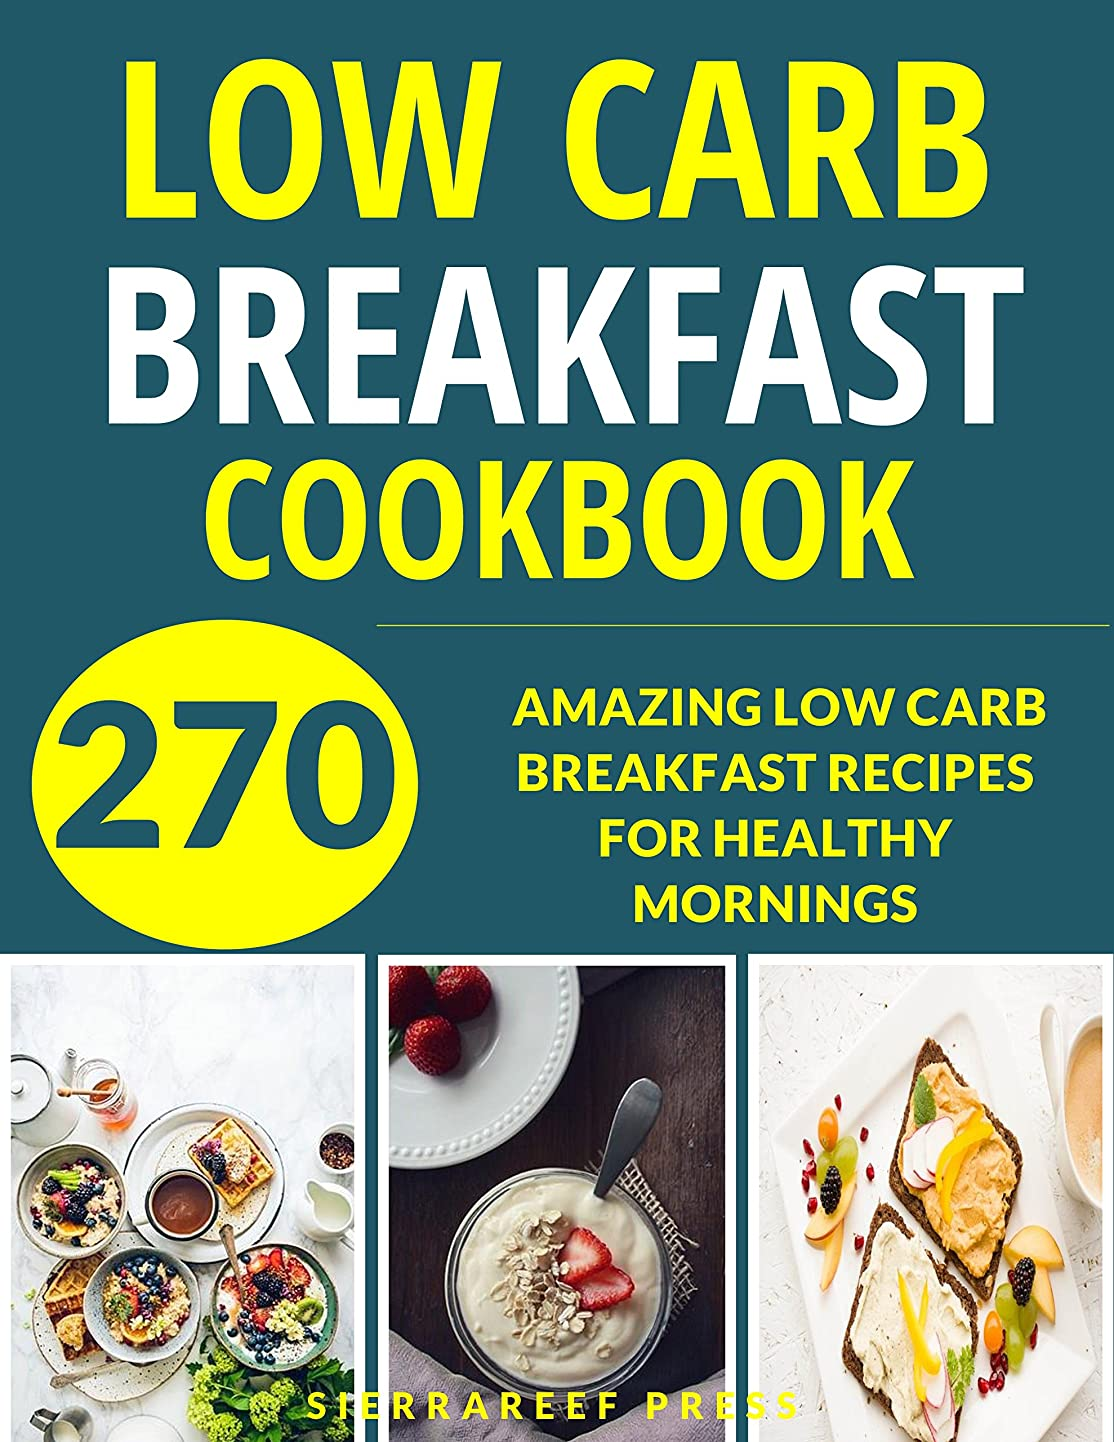 BREAKFAST: LOW CARB DIET: 270 BEST LOW CARB BREAKFAST RECIPES (low carb cookbook, paleo, paleo cooking, gluten free, healthy cooking, healthy eating, healthy ... breakfast recipes) (English Edition)